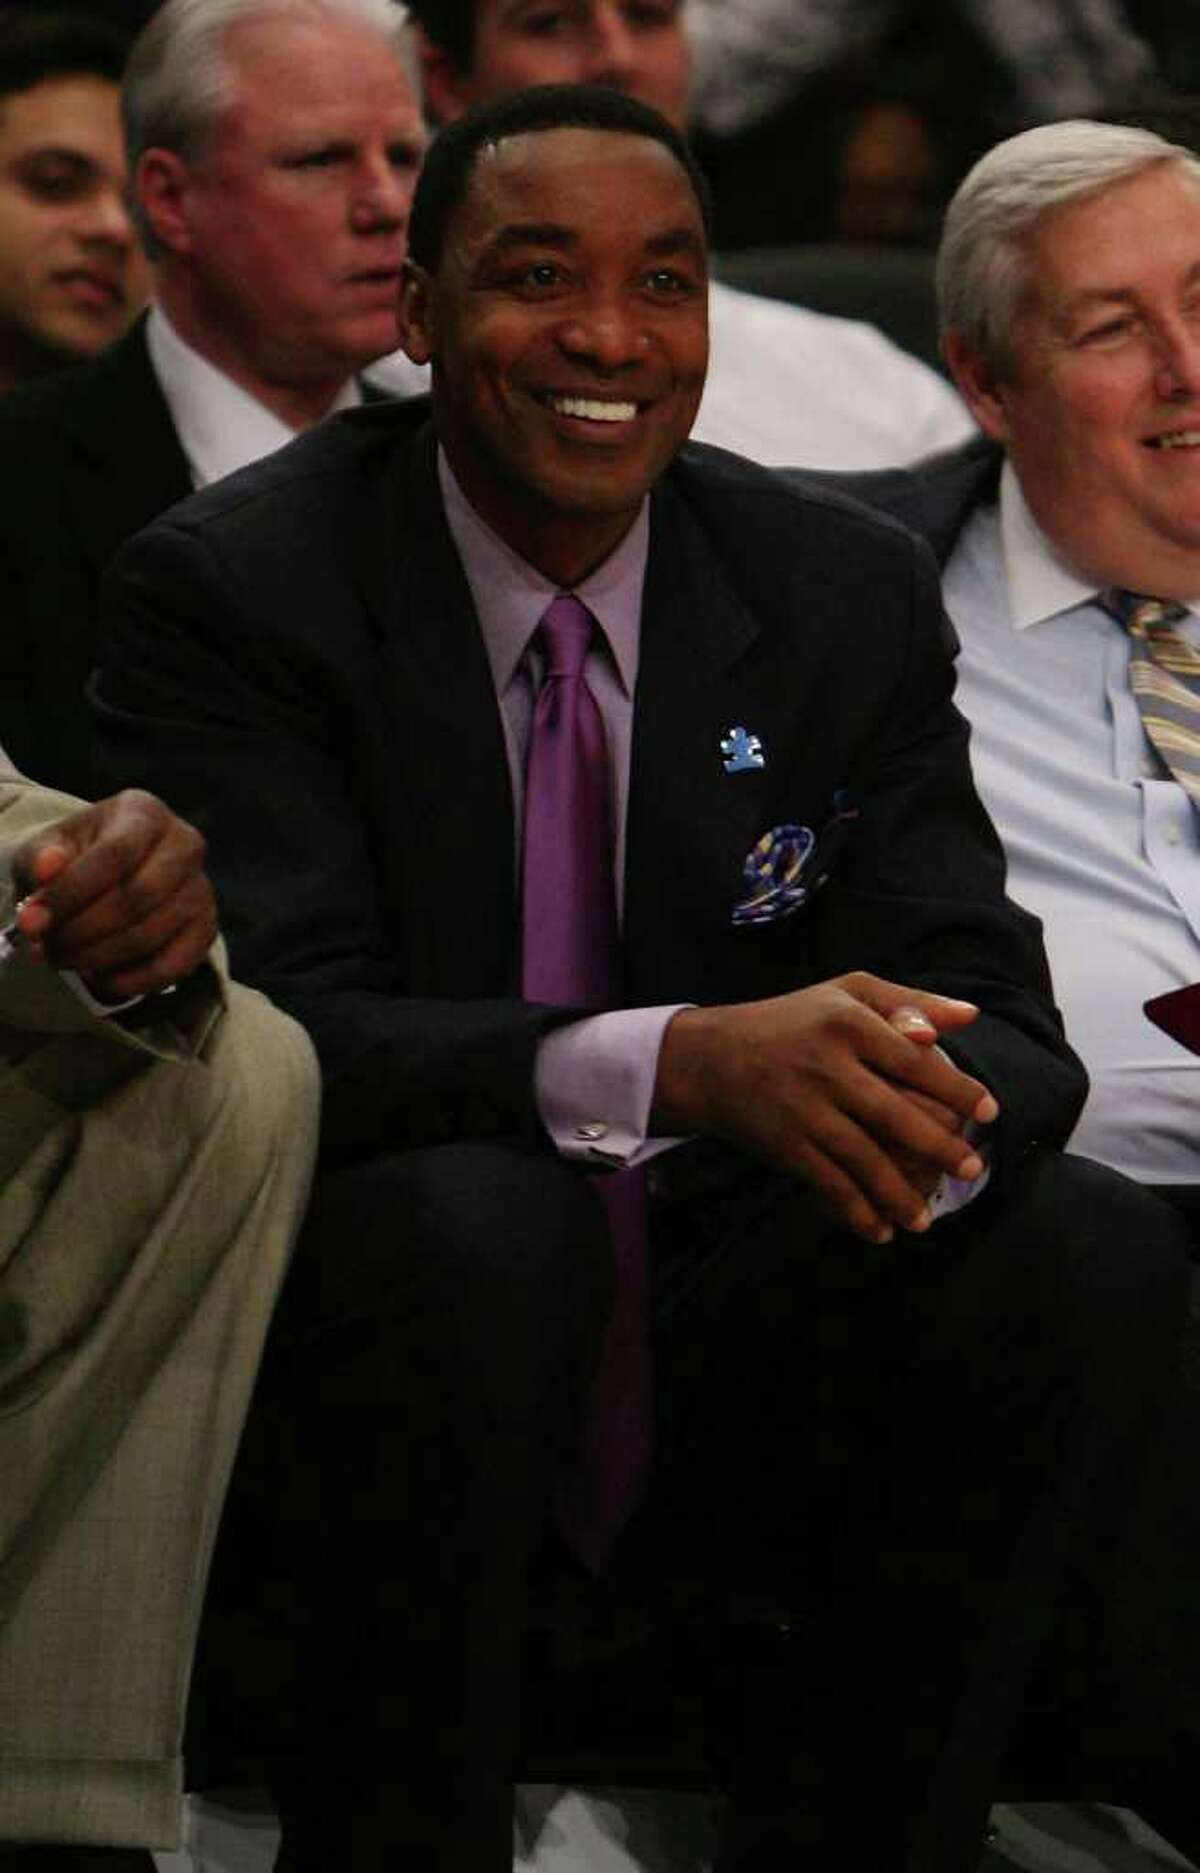 Former New York Knicks Coach Isiah Thomas smiles during a 2008 win against the Detroit Pistons at Madison Square Garden. Thomas was spotted with wife Lynn having dinner at Terra Ristorante in Greenwich Monday. (Photo by Nick Laham/Getty Images)